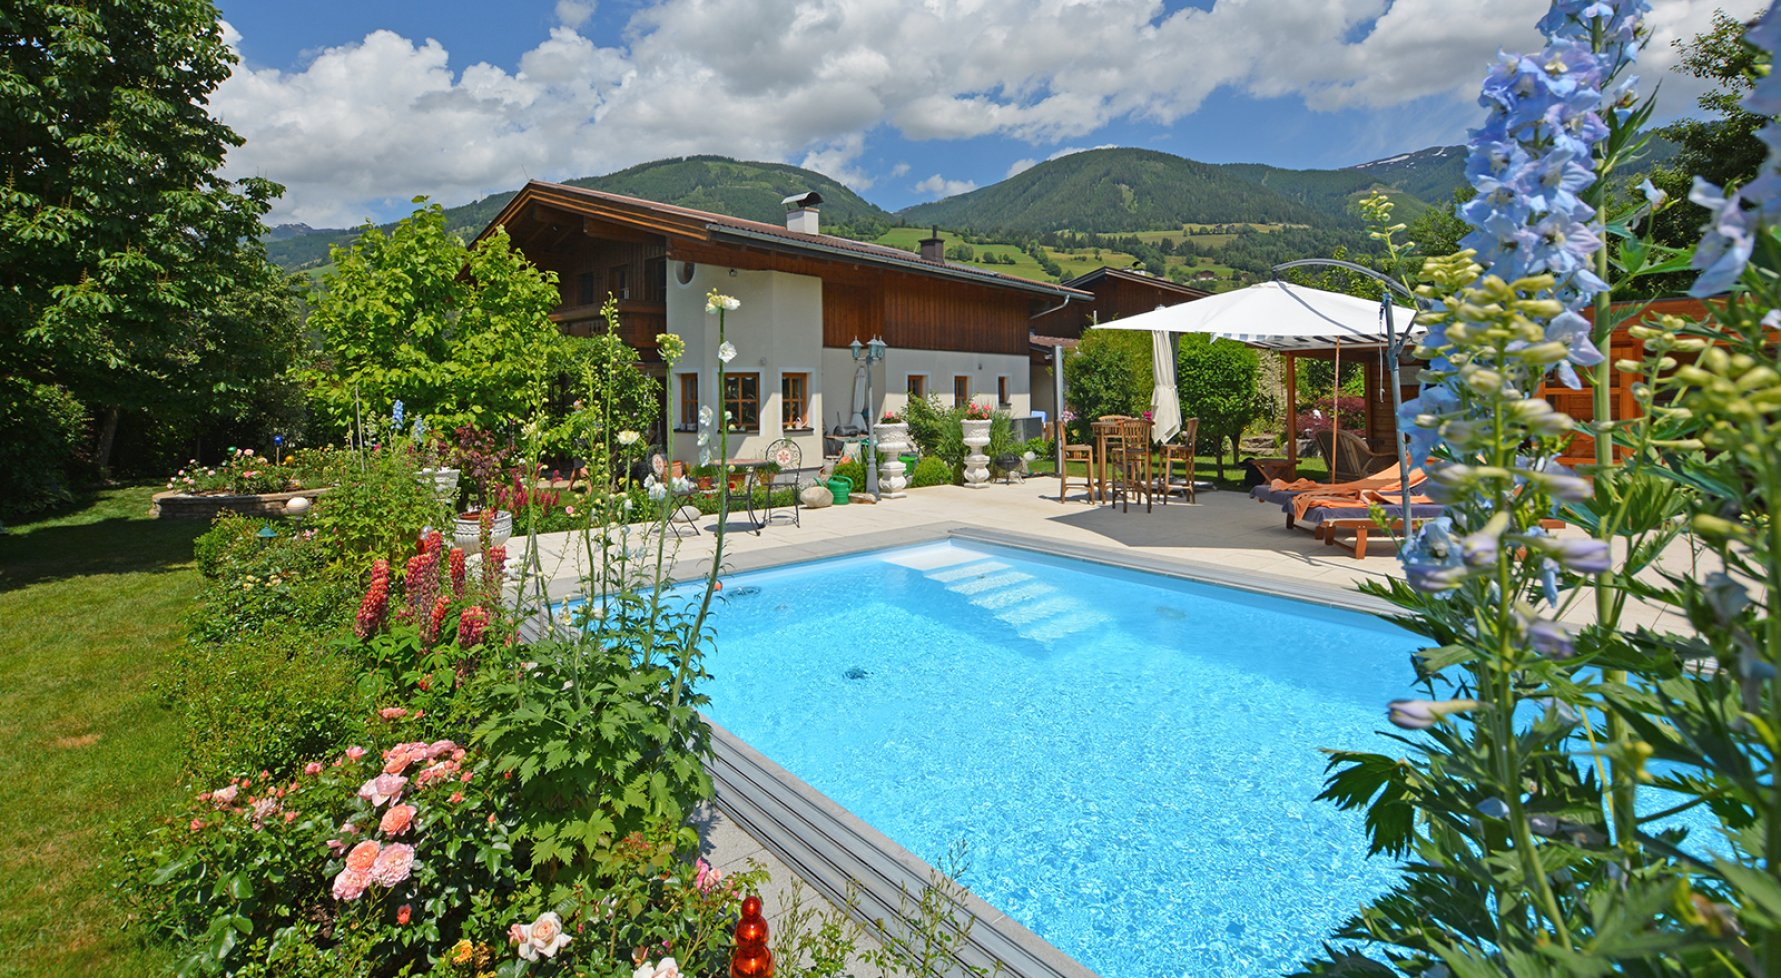 Property in 5722 Niedernsill: Great Cinema ... Near Zell am See! Country villa with pool on a great plot of land - picture 1